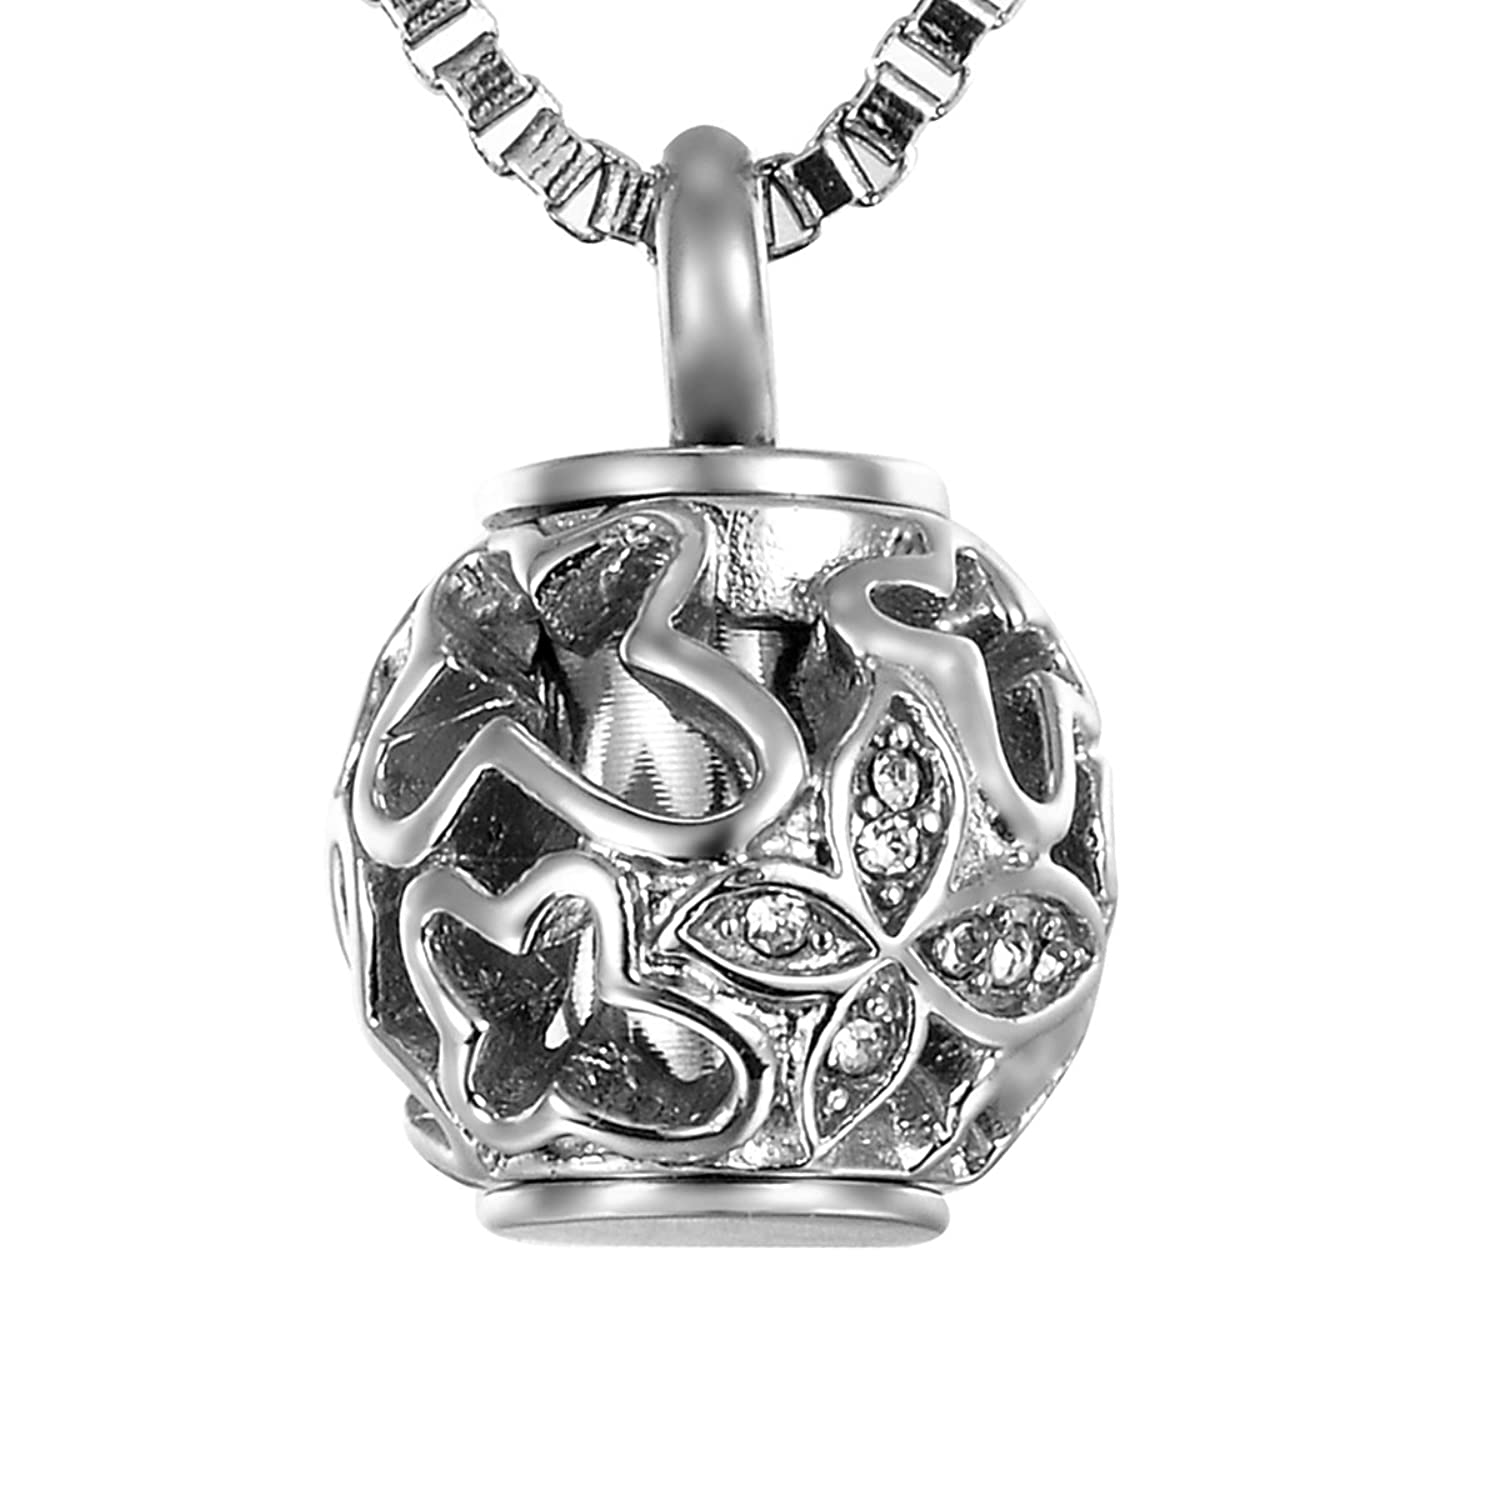 Amazon valyria cremation jewelry urn pendant necklace with amazon valyria cremation jewelry urn pendant necklace with hollow diamond butterfly beads always in my heart silver tone jewelry aloadofball Choice Image